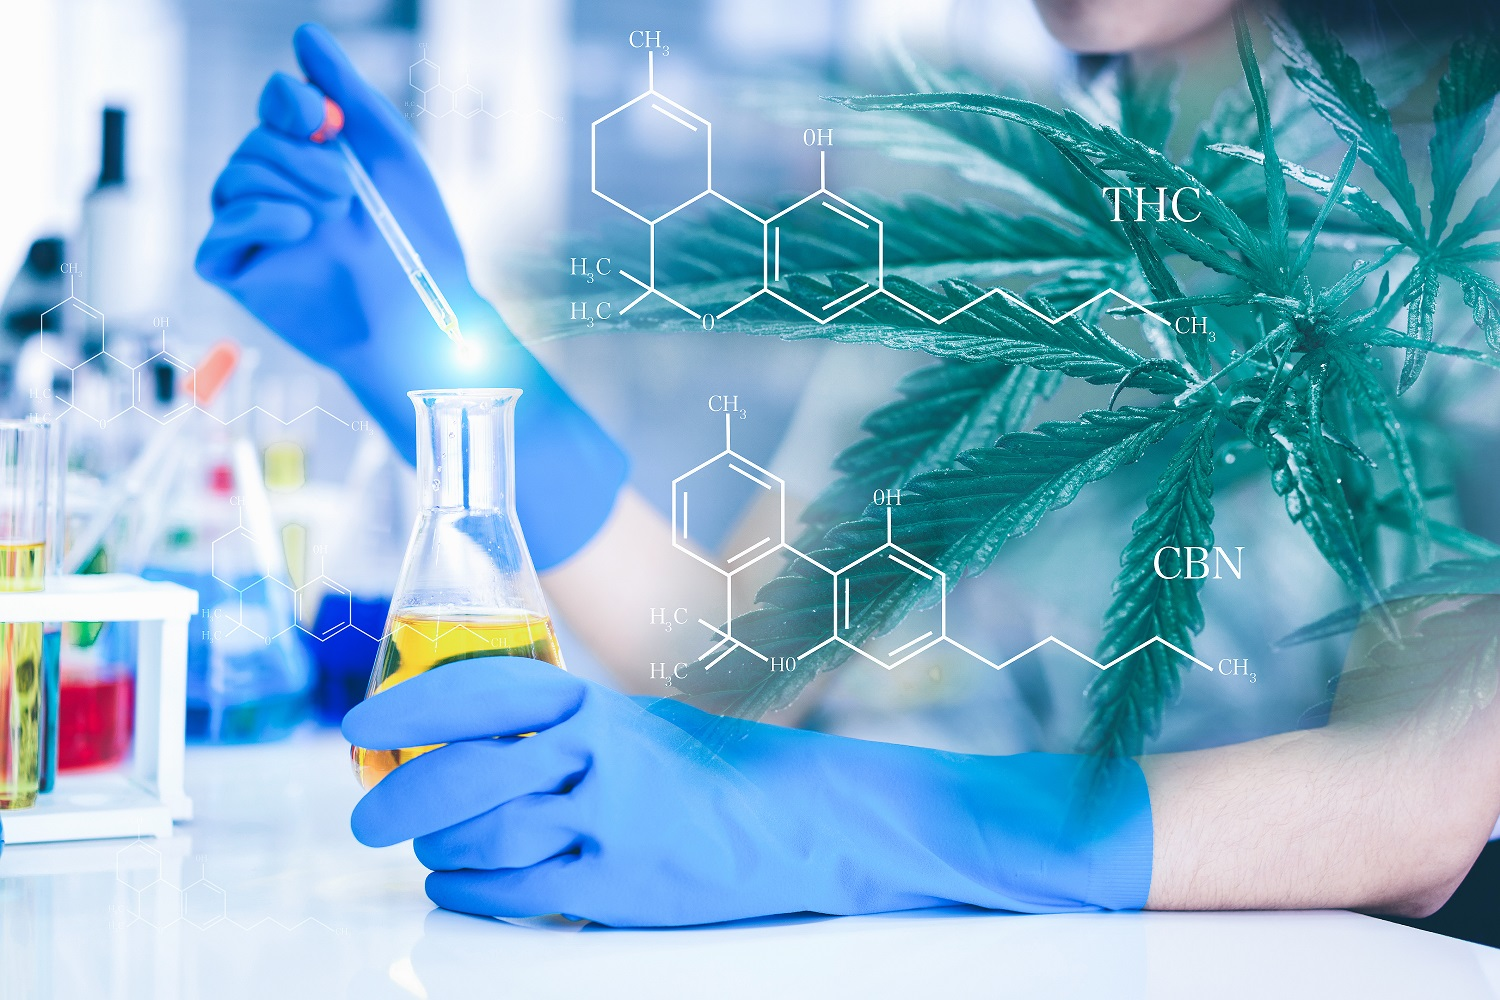 Double exposure of researchers and Cannabis tree. Researchers are researching marijuana extracts THC and CBN for medical and business use. The researcher is analyzing the medicine related innovation.